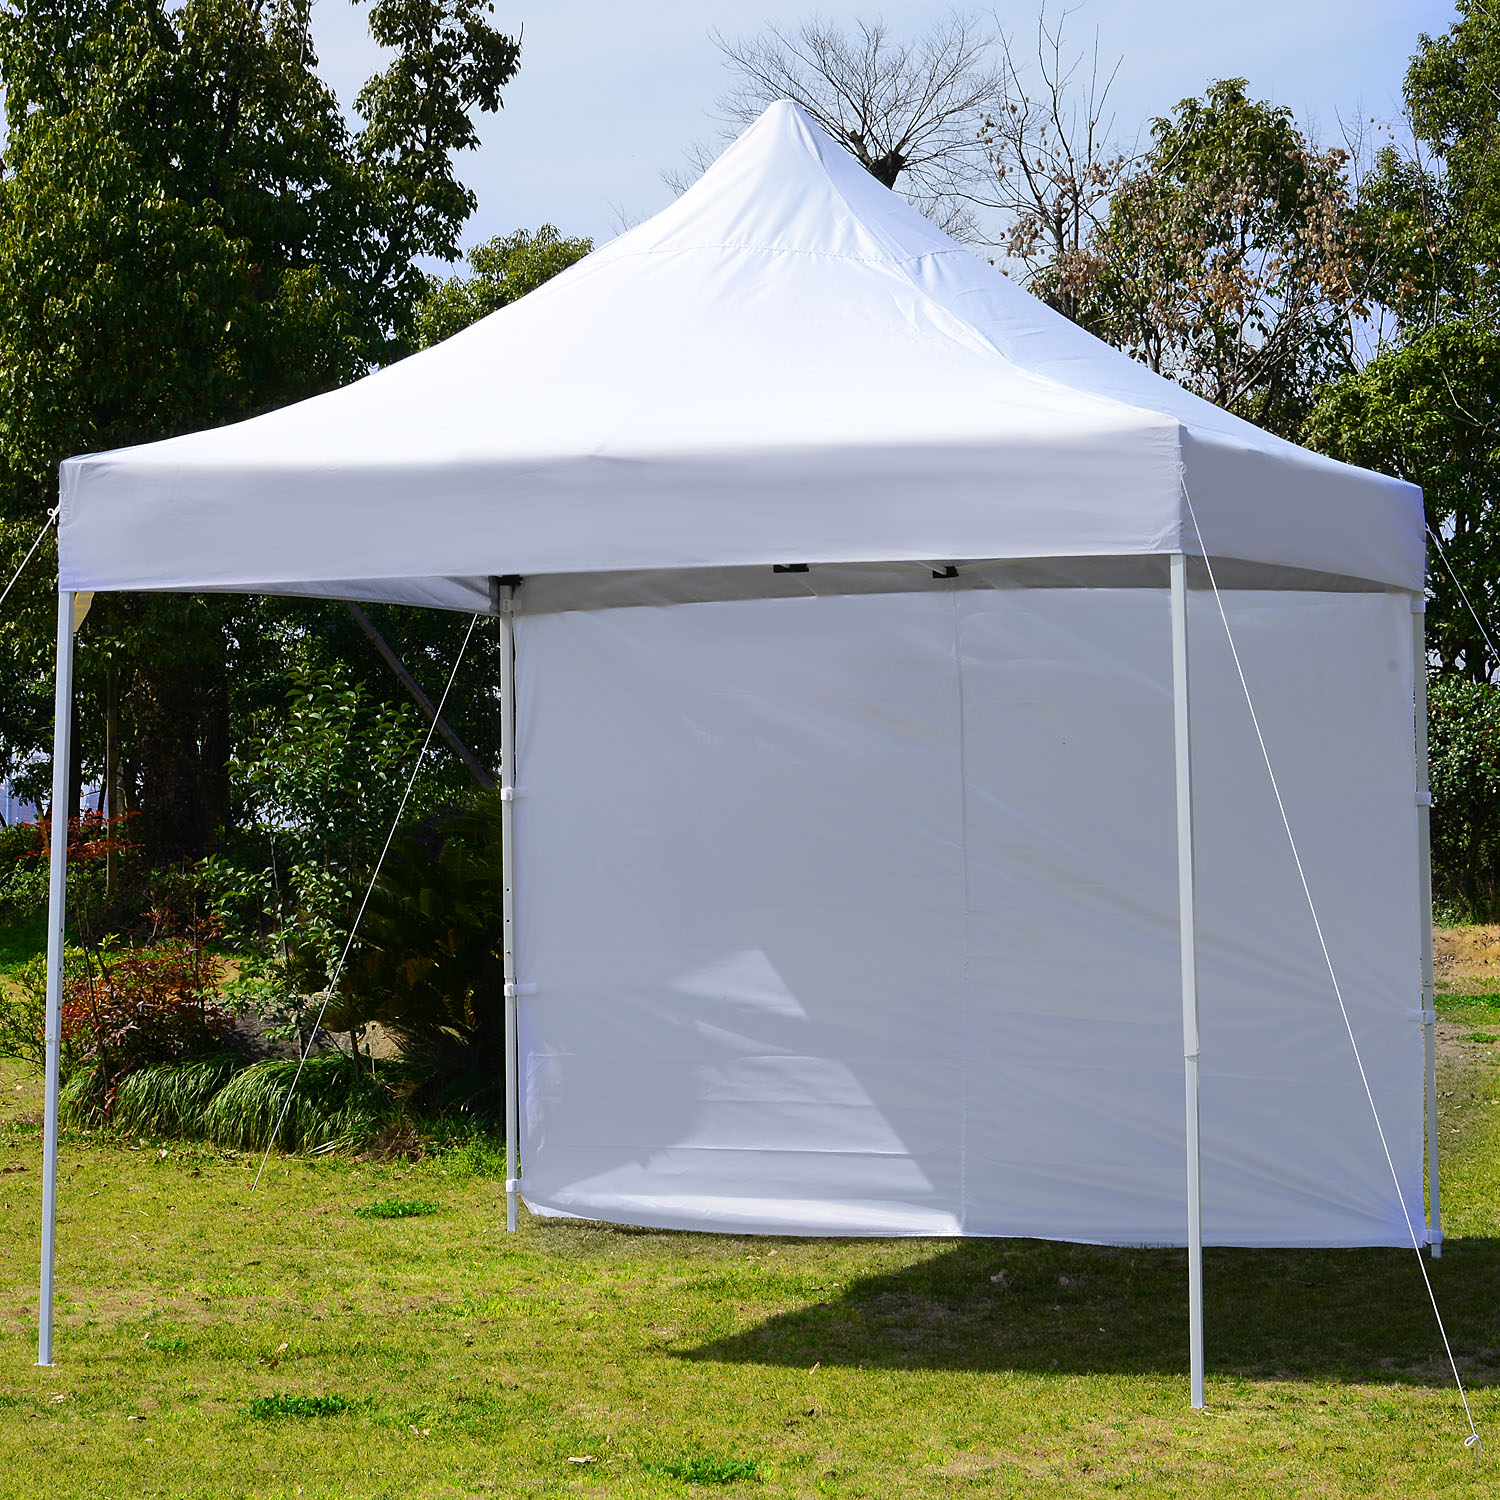 Image of CAD $149.99 Outsunny 9.7x9.7ft Pop Up Canopy Tent Instant Commercial Gazebo Portable Foldable Outdoor Shelter with Wall Panel / Party w/ Canada 95509792235